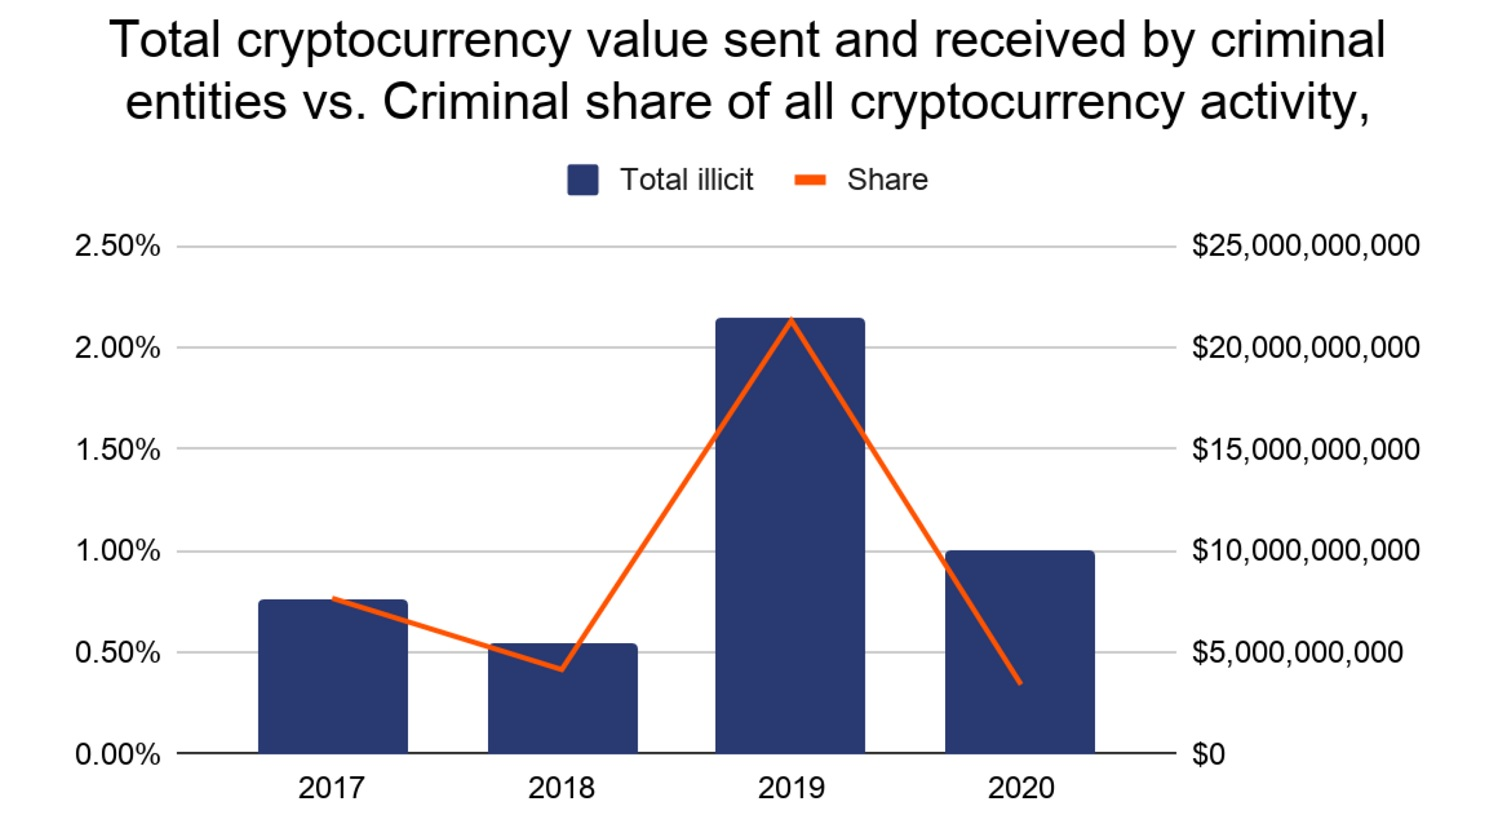 Crypto Crime Fell Sharply to Only 0.3% of All Cryptocurrency Activity in 2020